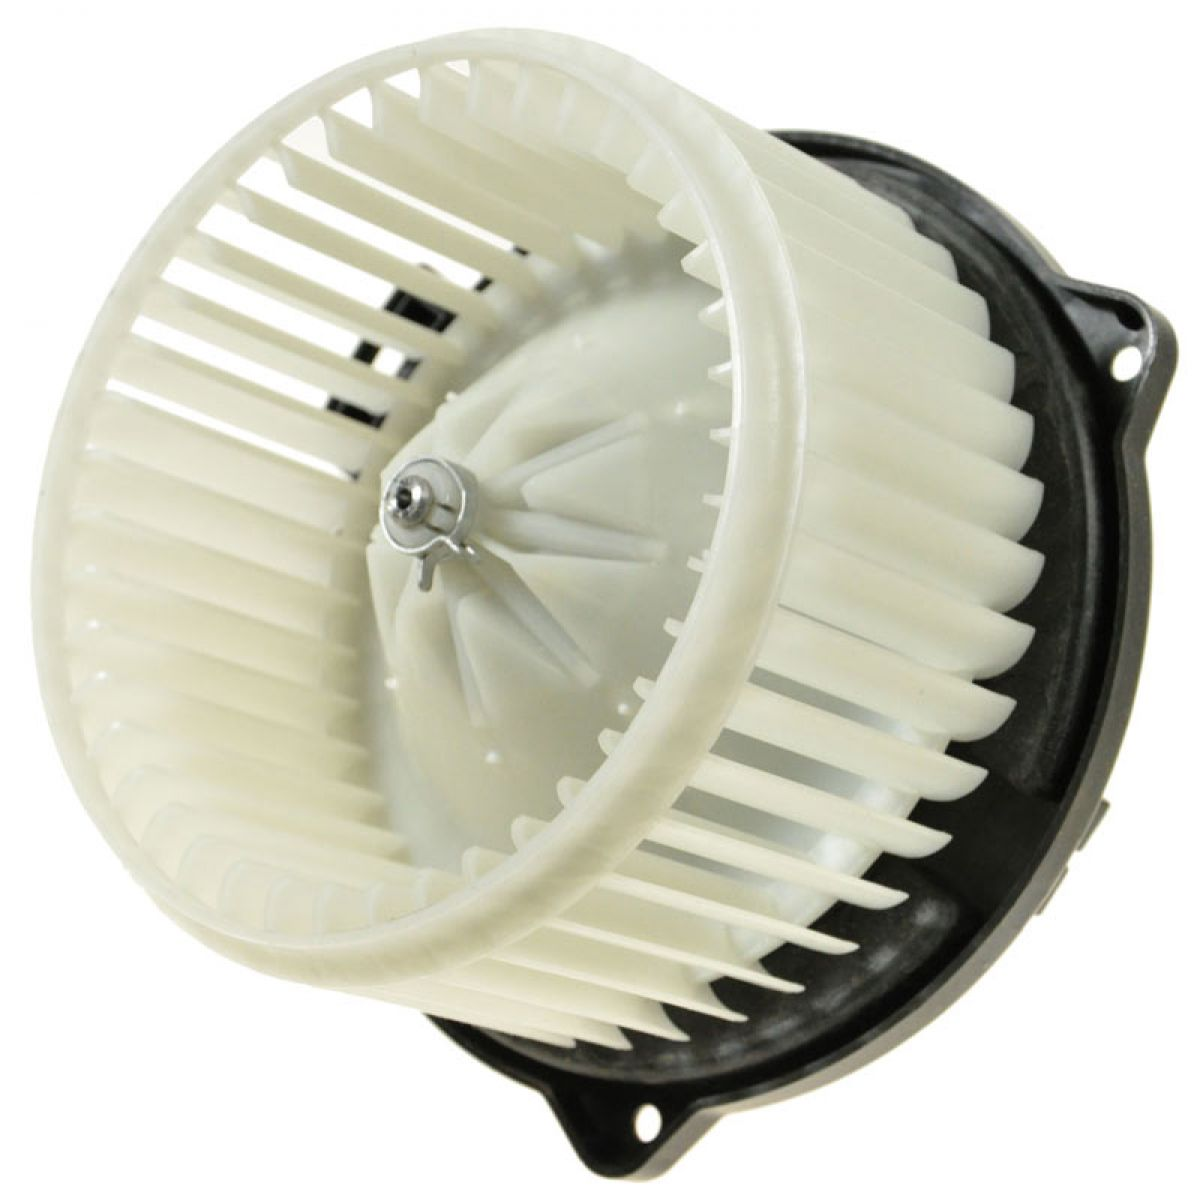 Blower Cage Replacement : Heater blower motor with fan cage for acura mdx honda